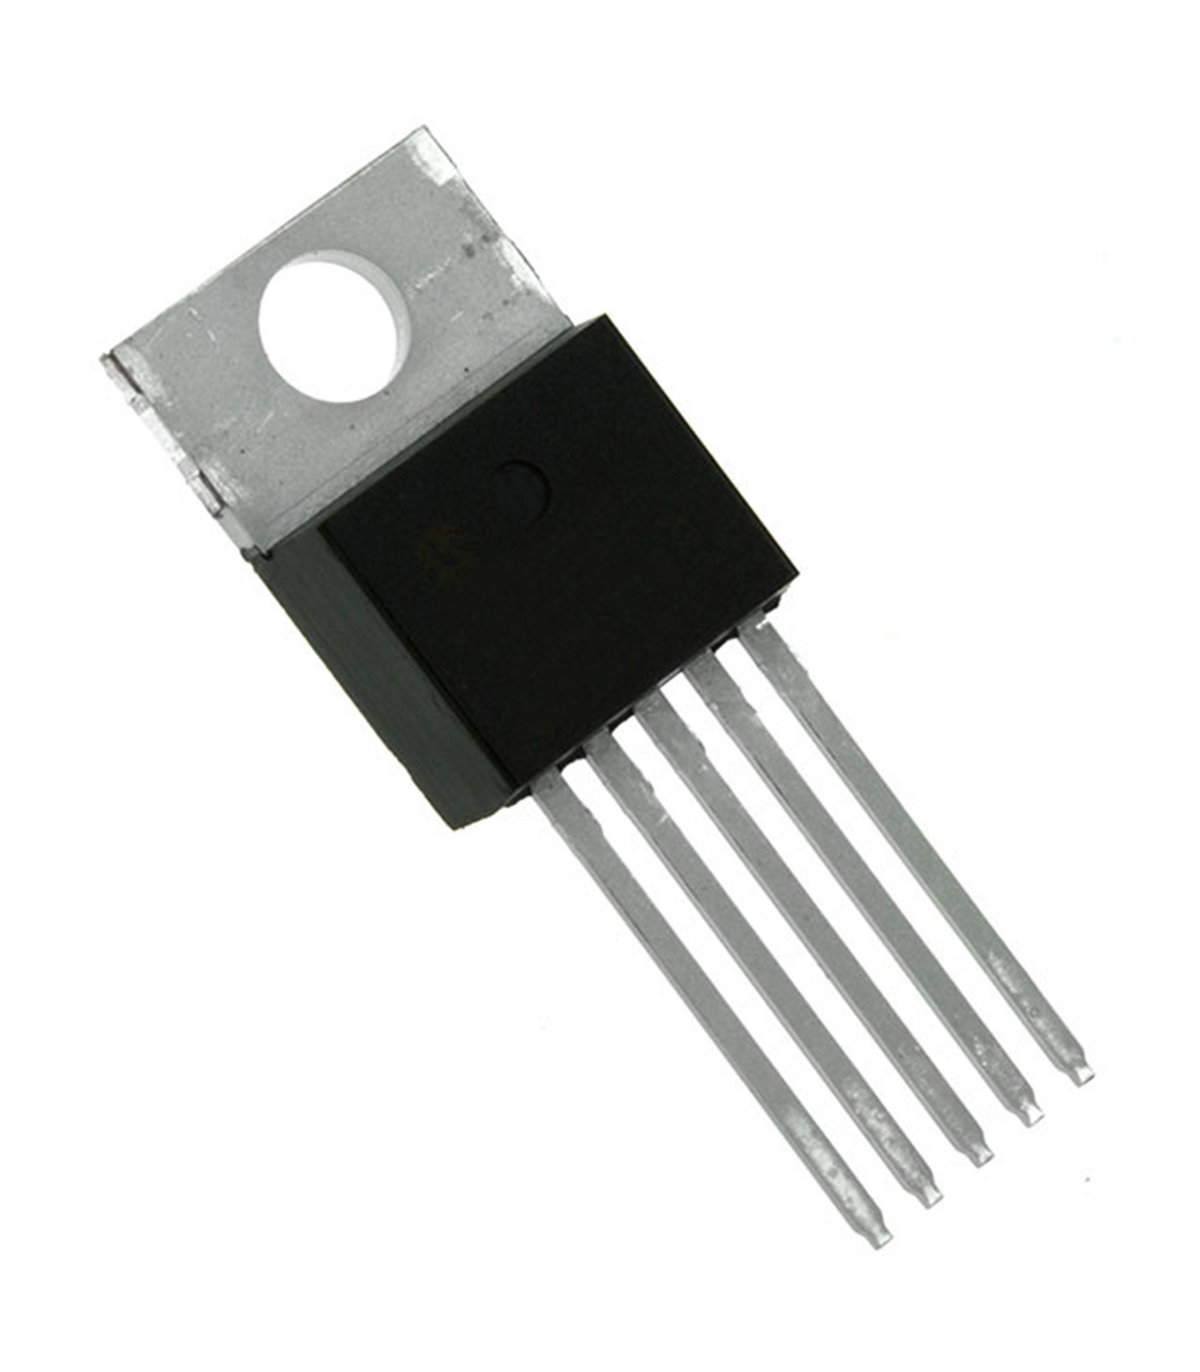 STP80NF10 MOSFET TRANSISTOR N-CH 100V 80A TO-220 STP80NF10